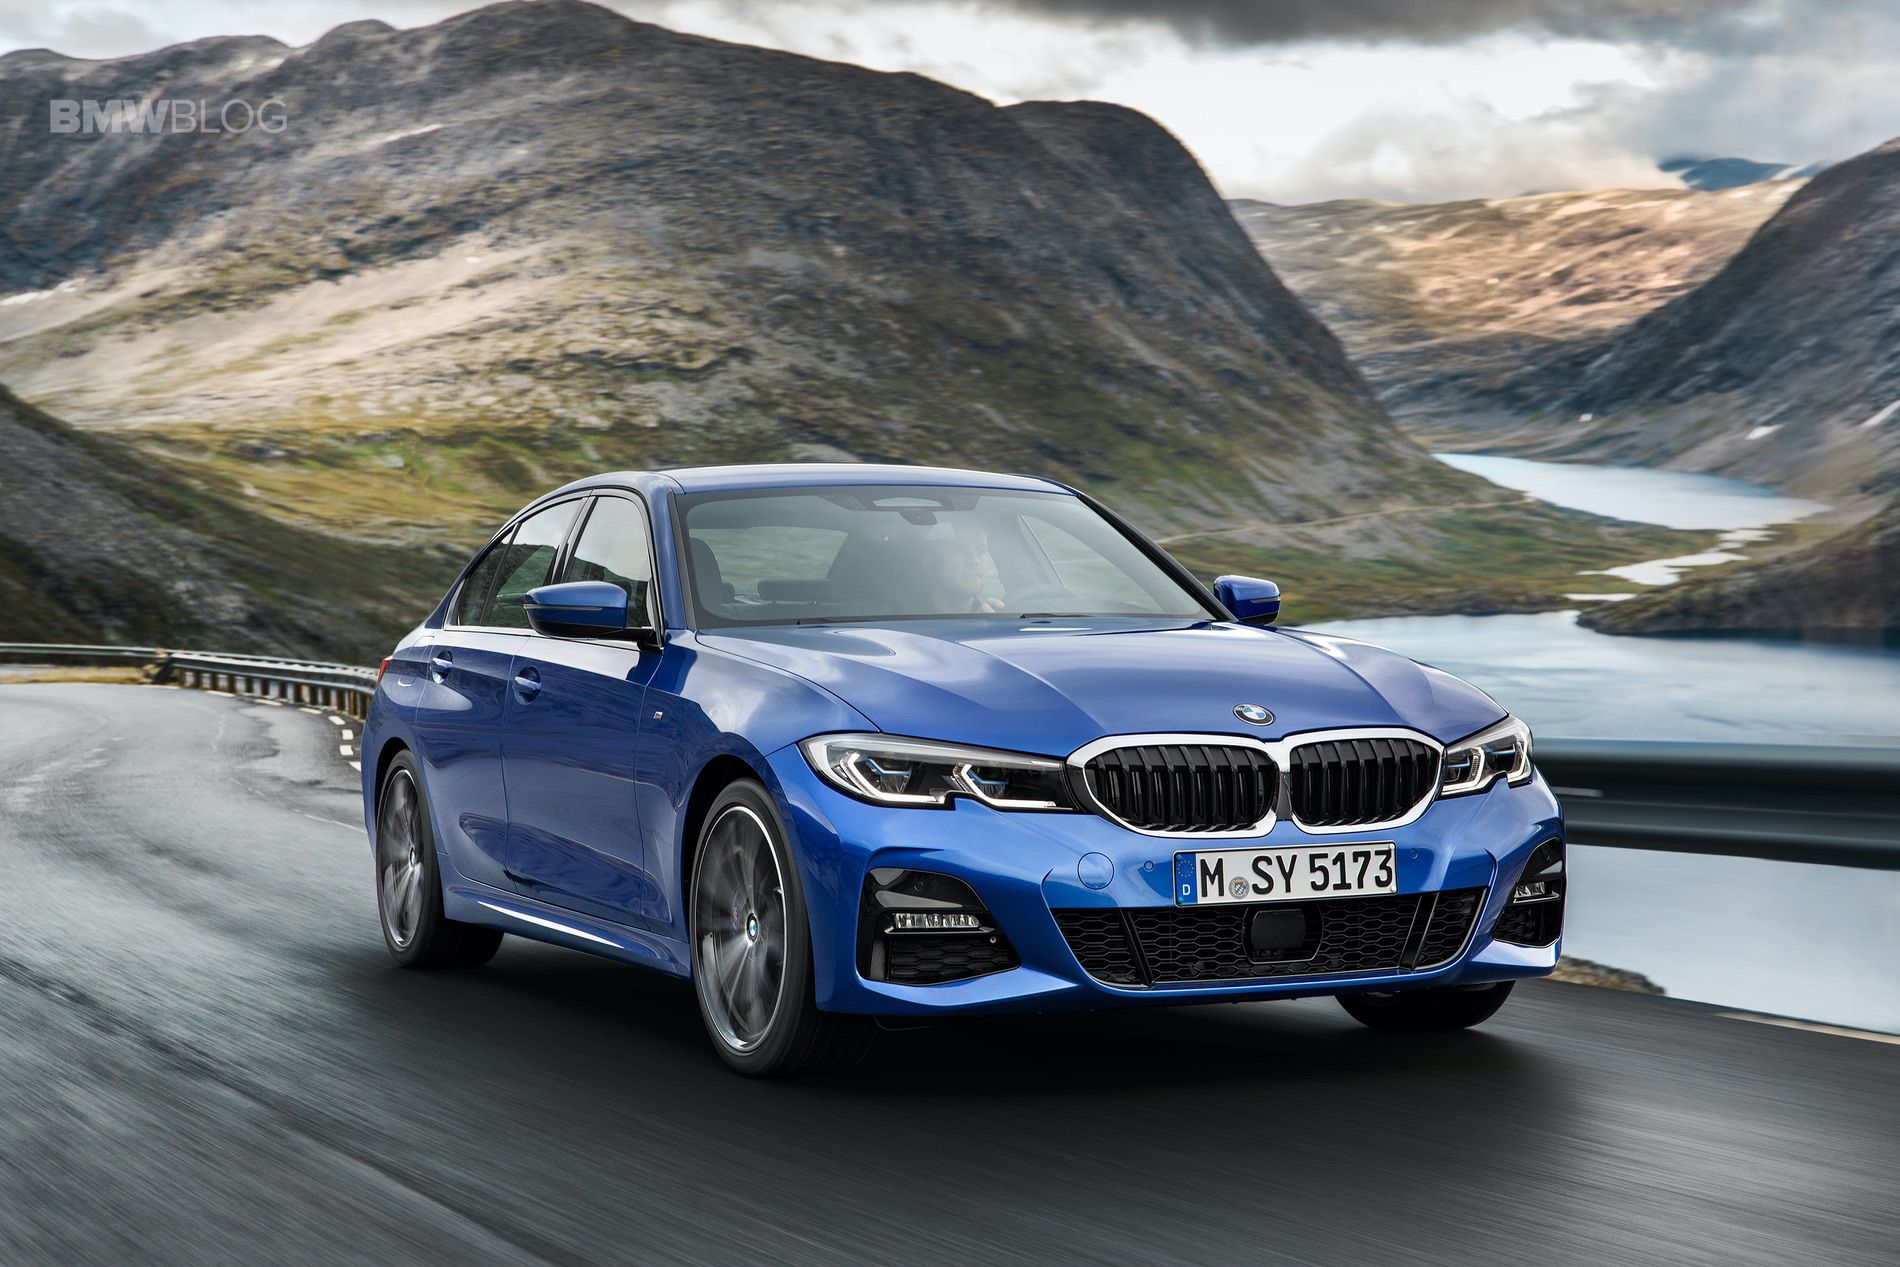 Bmw 3 Series G20 >> VIDEO: Check out the Exterior and Interior design of the G20 BMW 3 Series